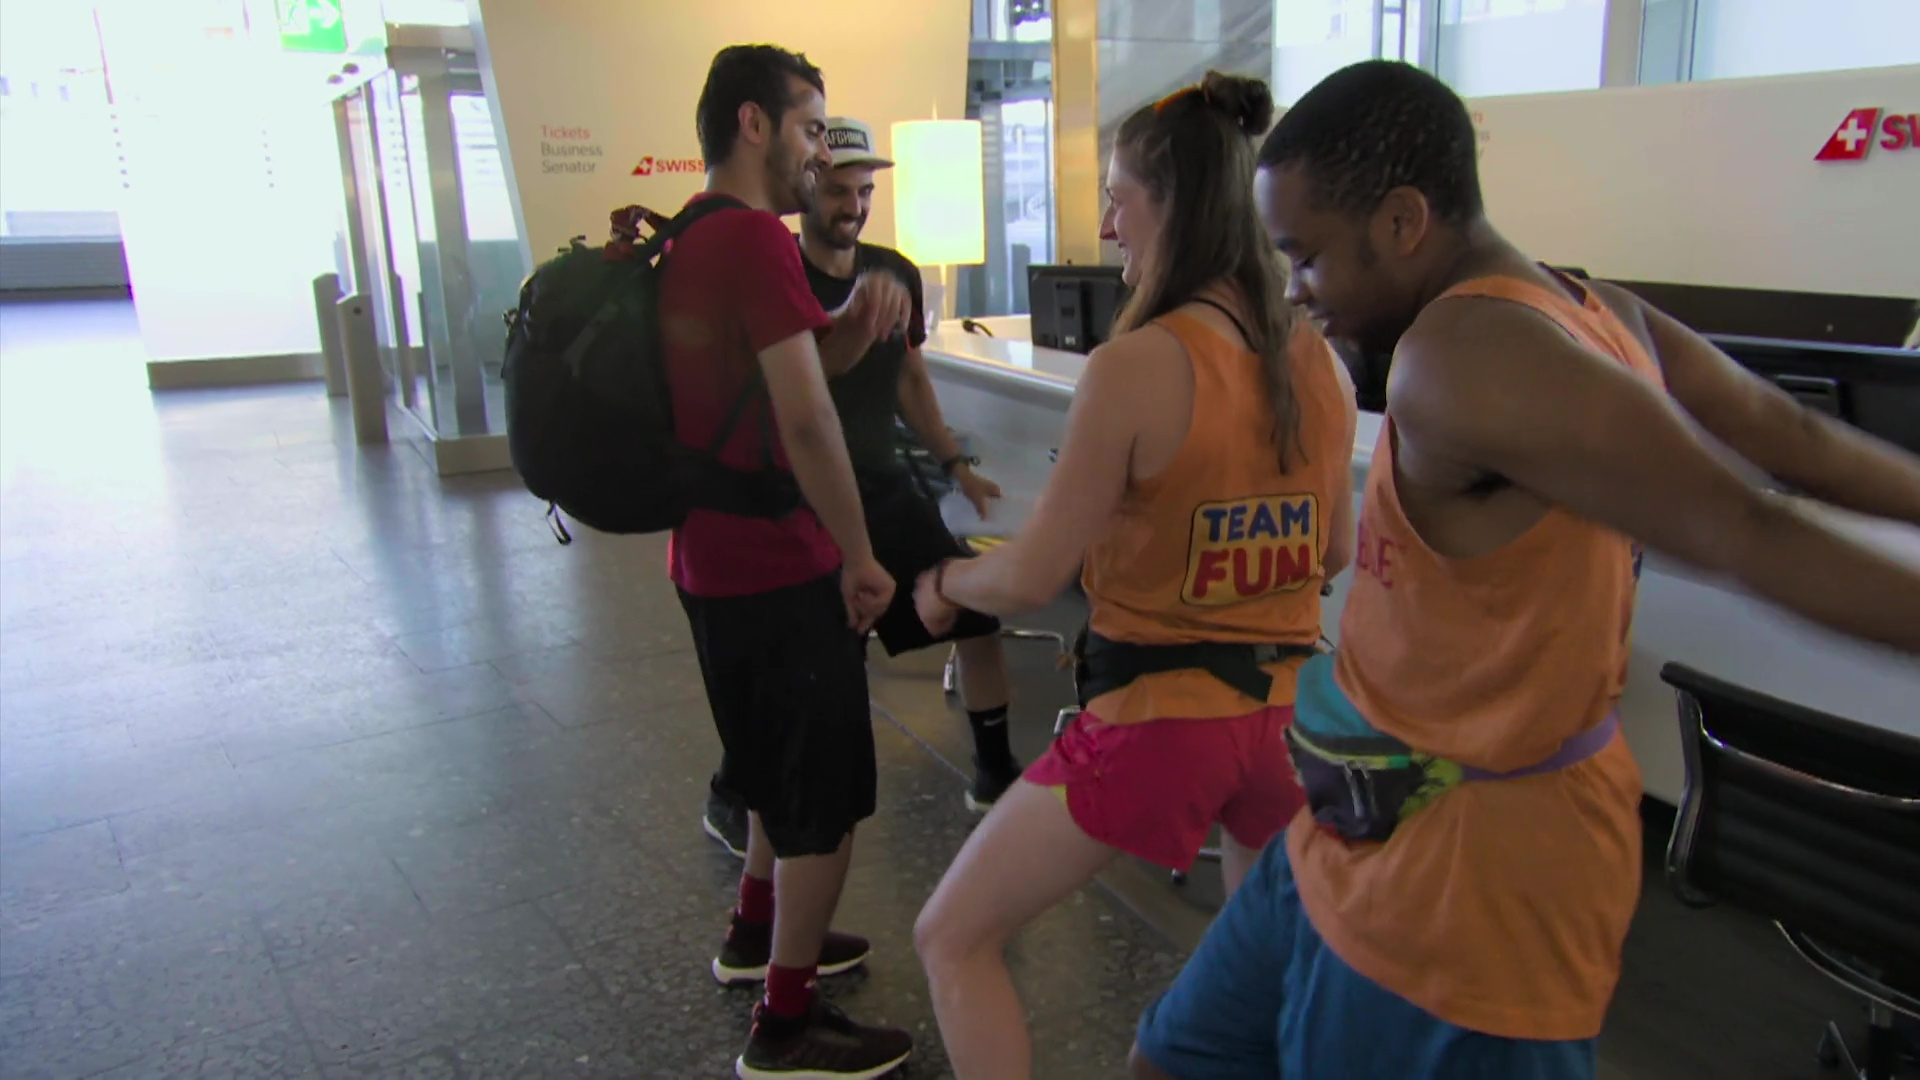 The Amazing Race 30 Episode 9